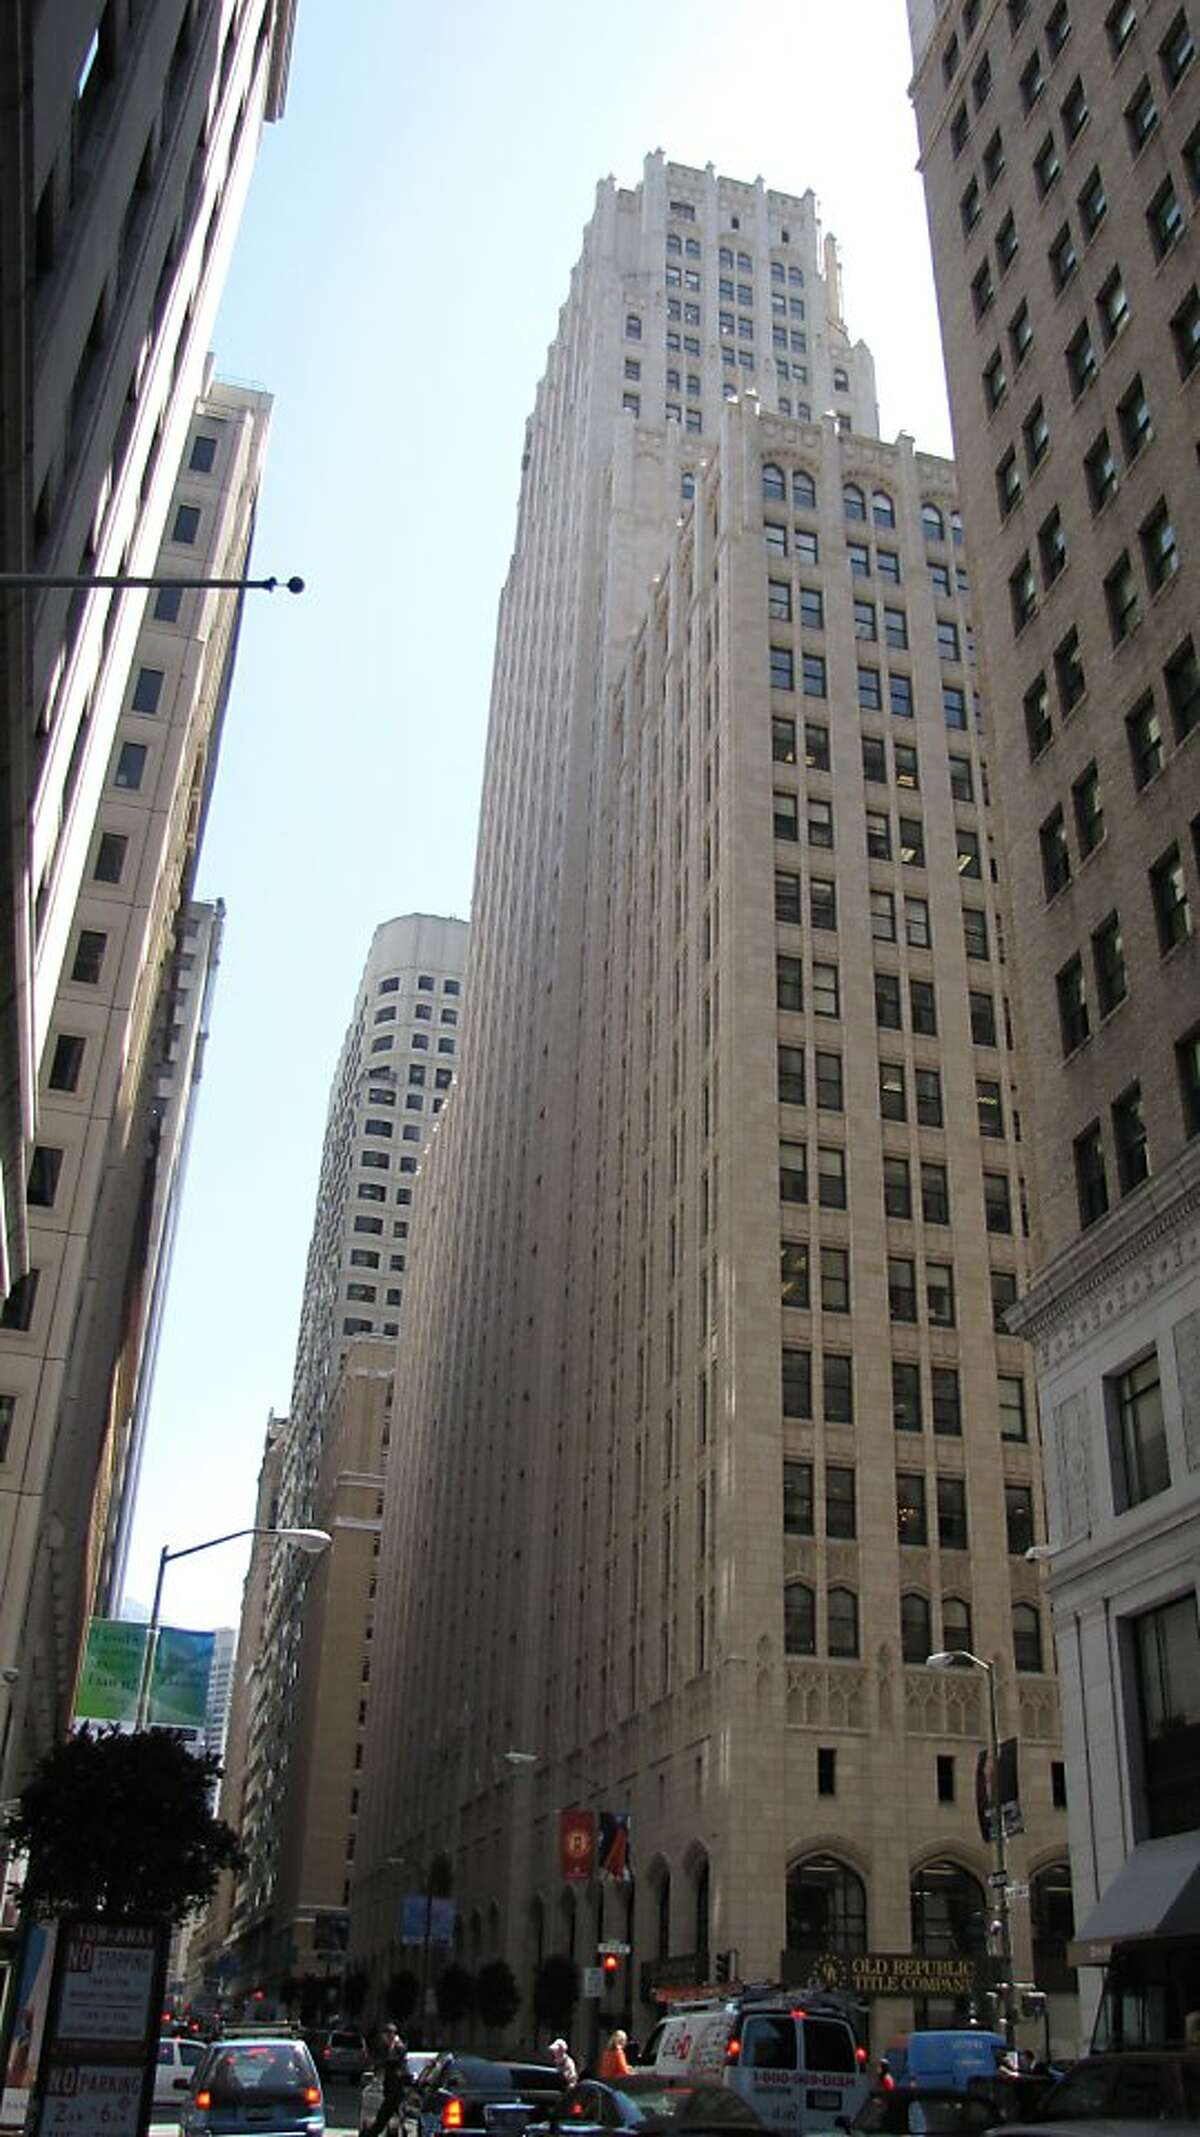 The Russ Building, designed by George Kelham, was San Francisco's tallest tower at 435 feet when it opened in 1927. More than two dozen rivals have passed it since then, but it remains one of the best skyscrapers in the city.